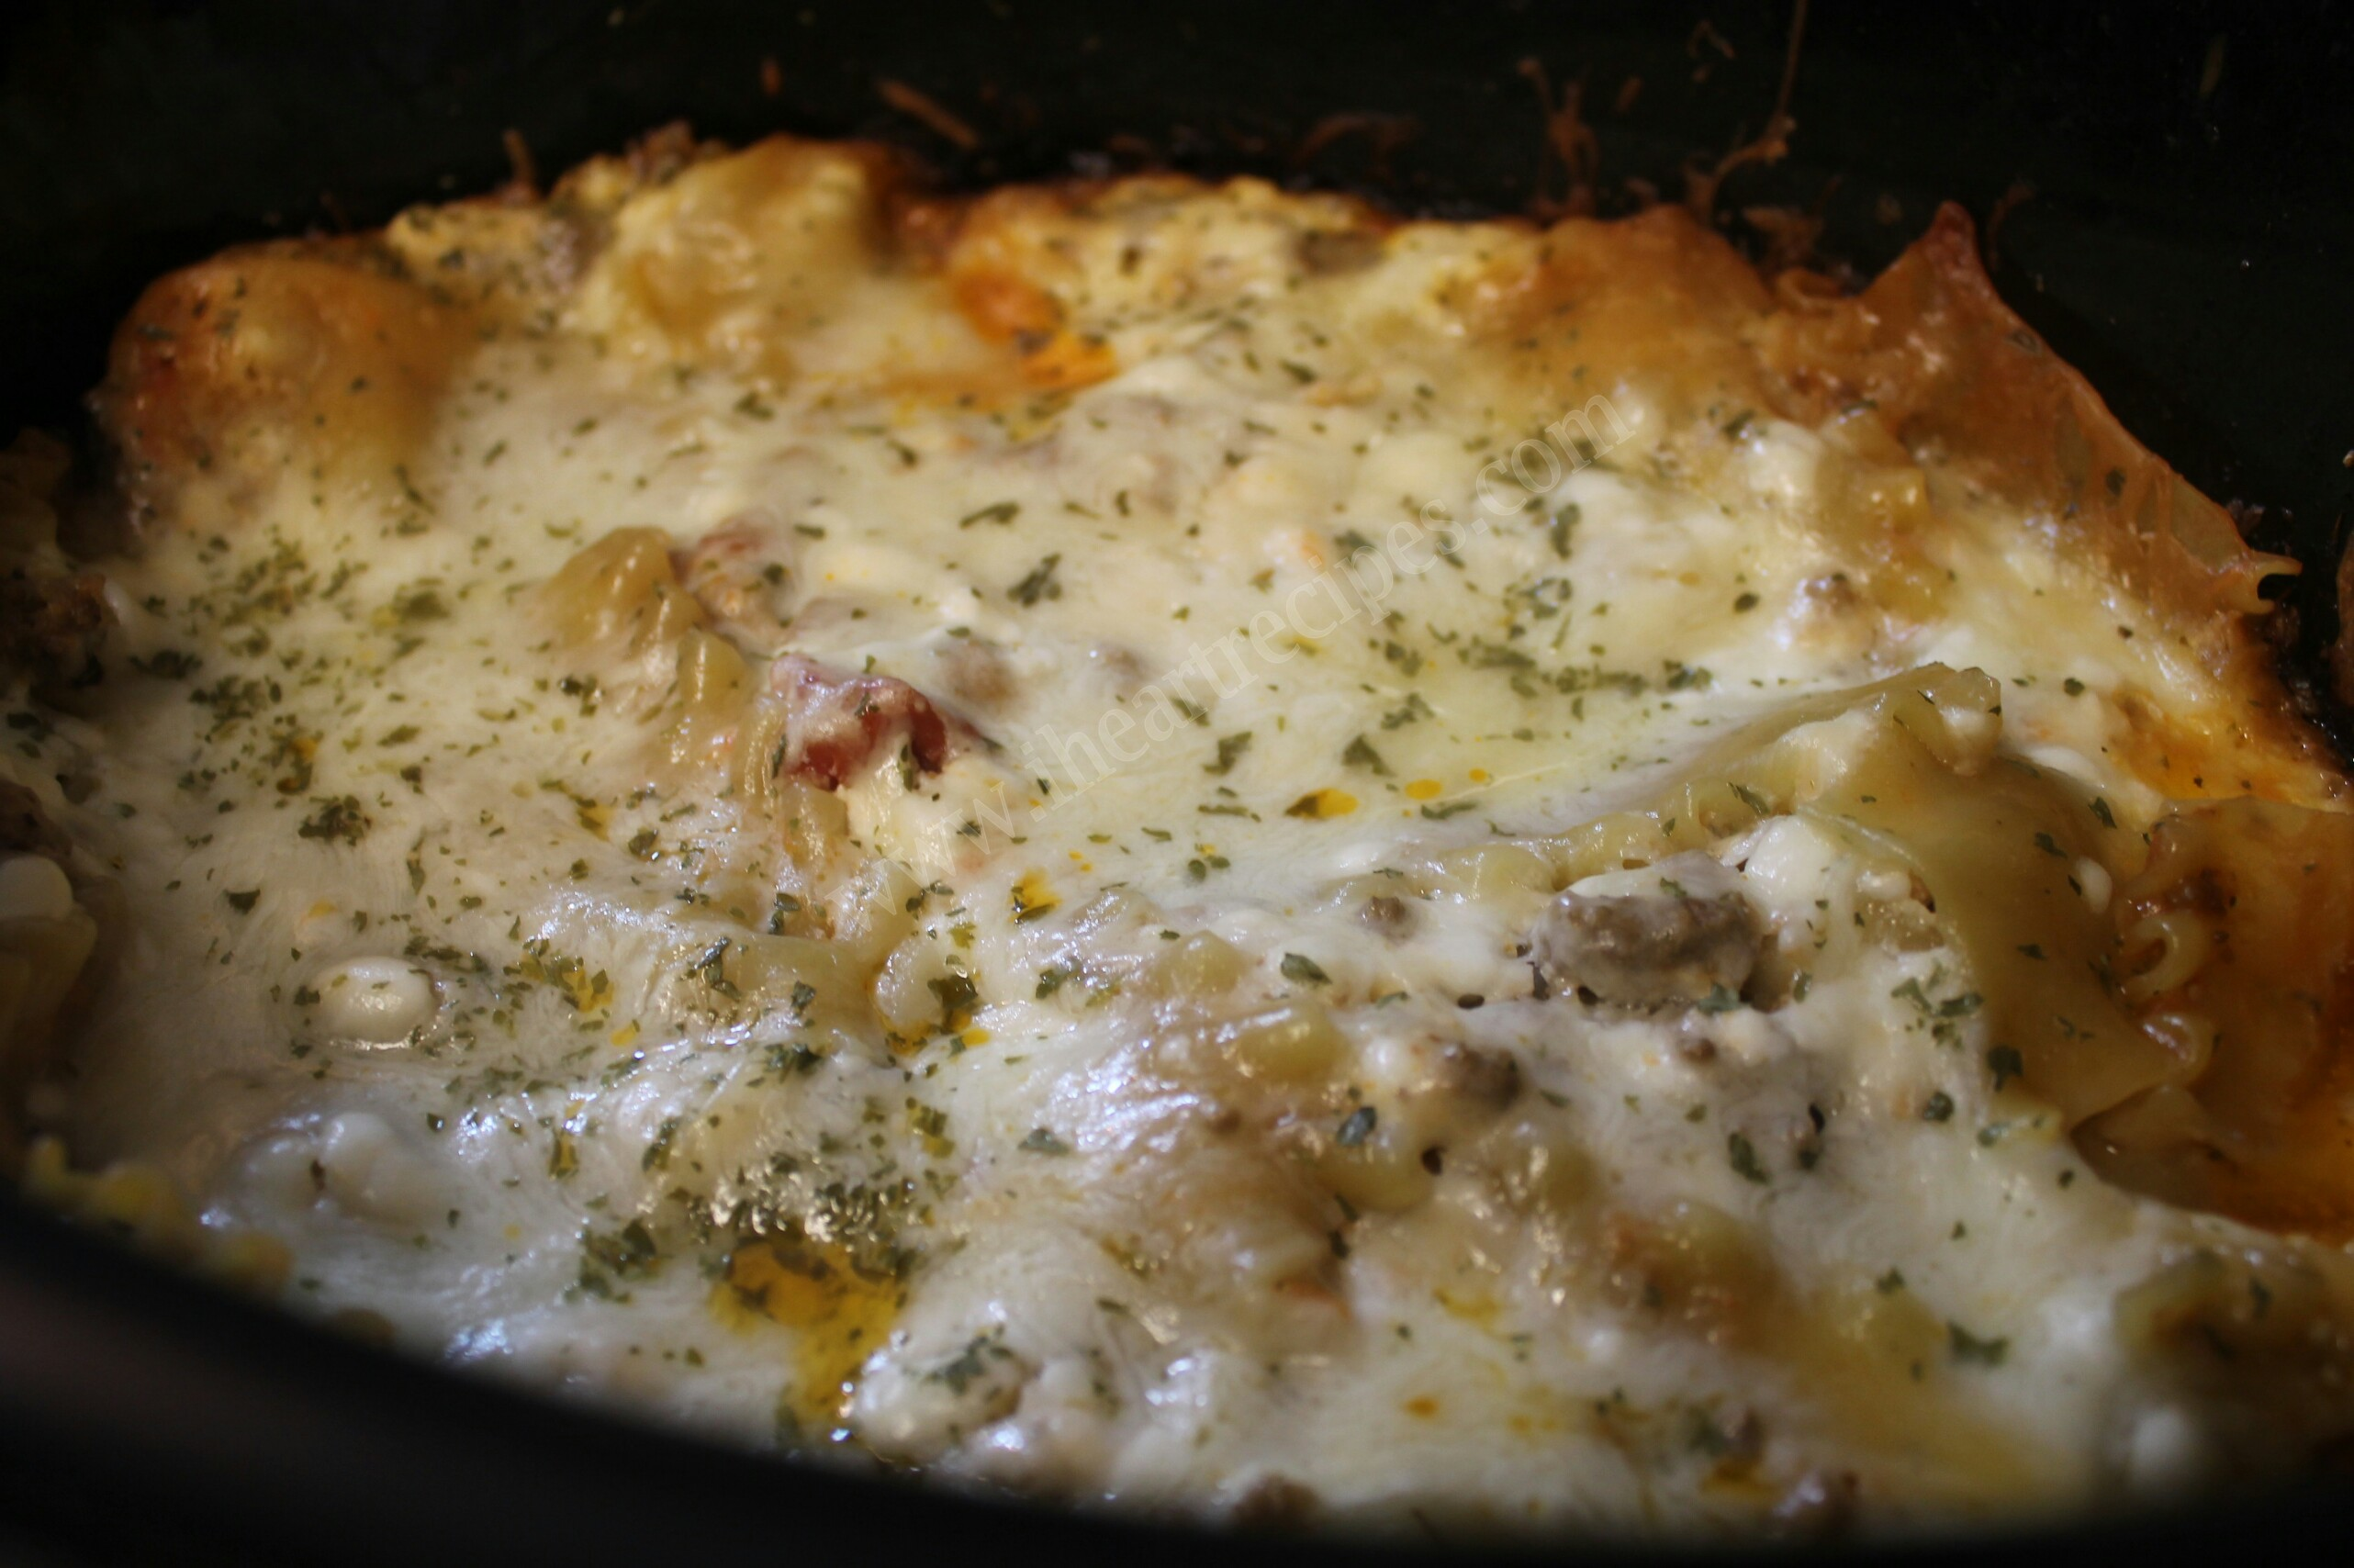 This slow cooker beef lasagna recipe takes all the hard work out of making the classic dish